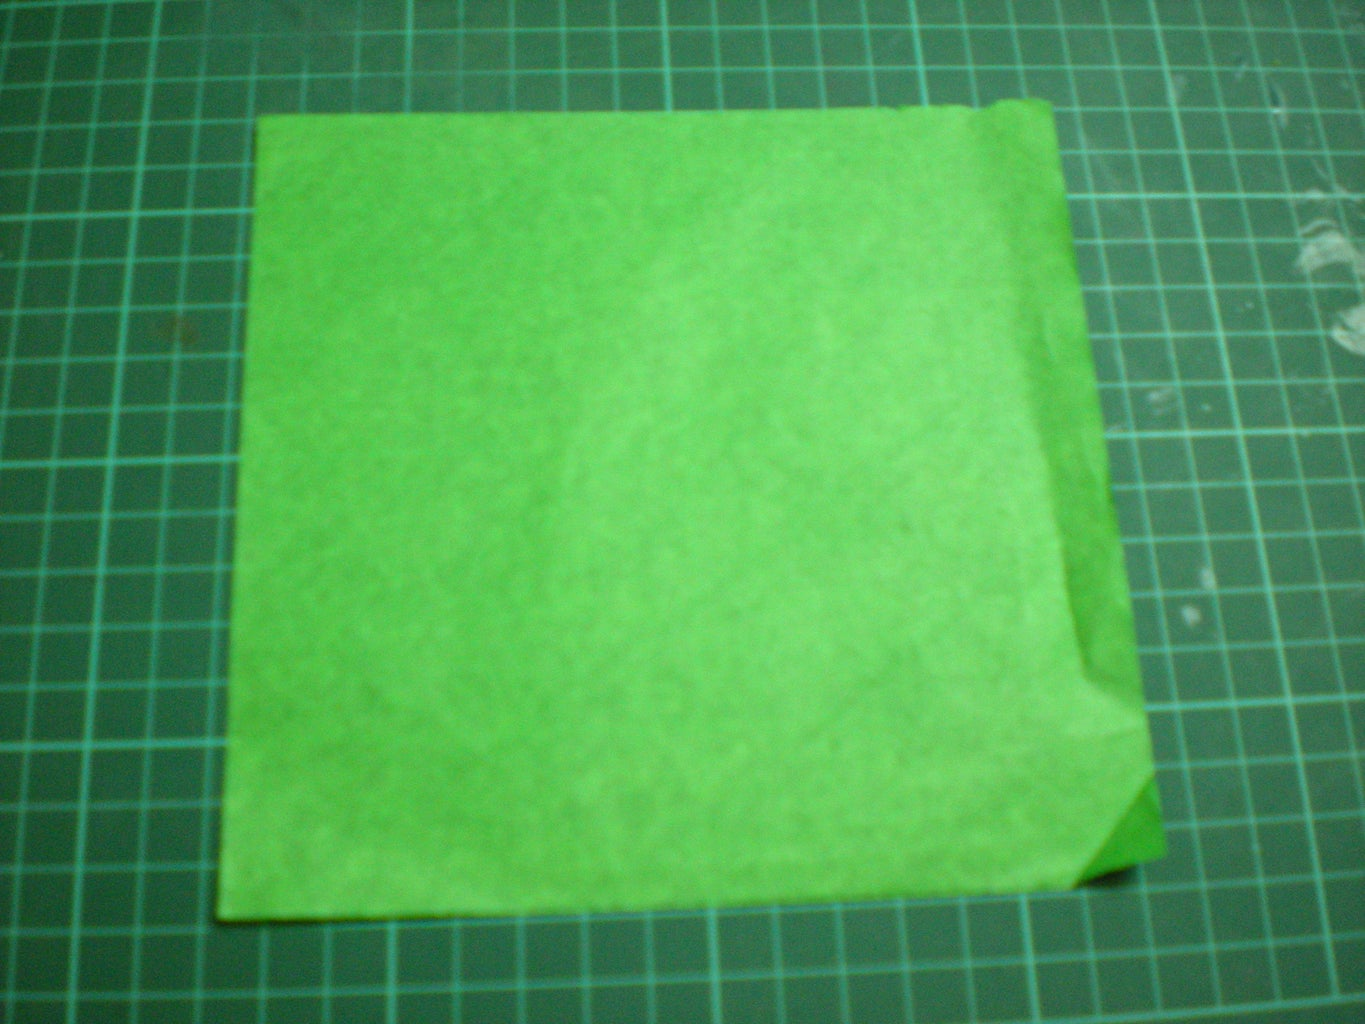 Leaves: Take the Green Square and Fold